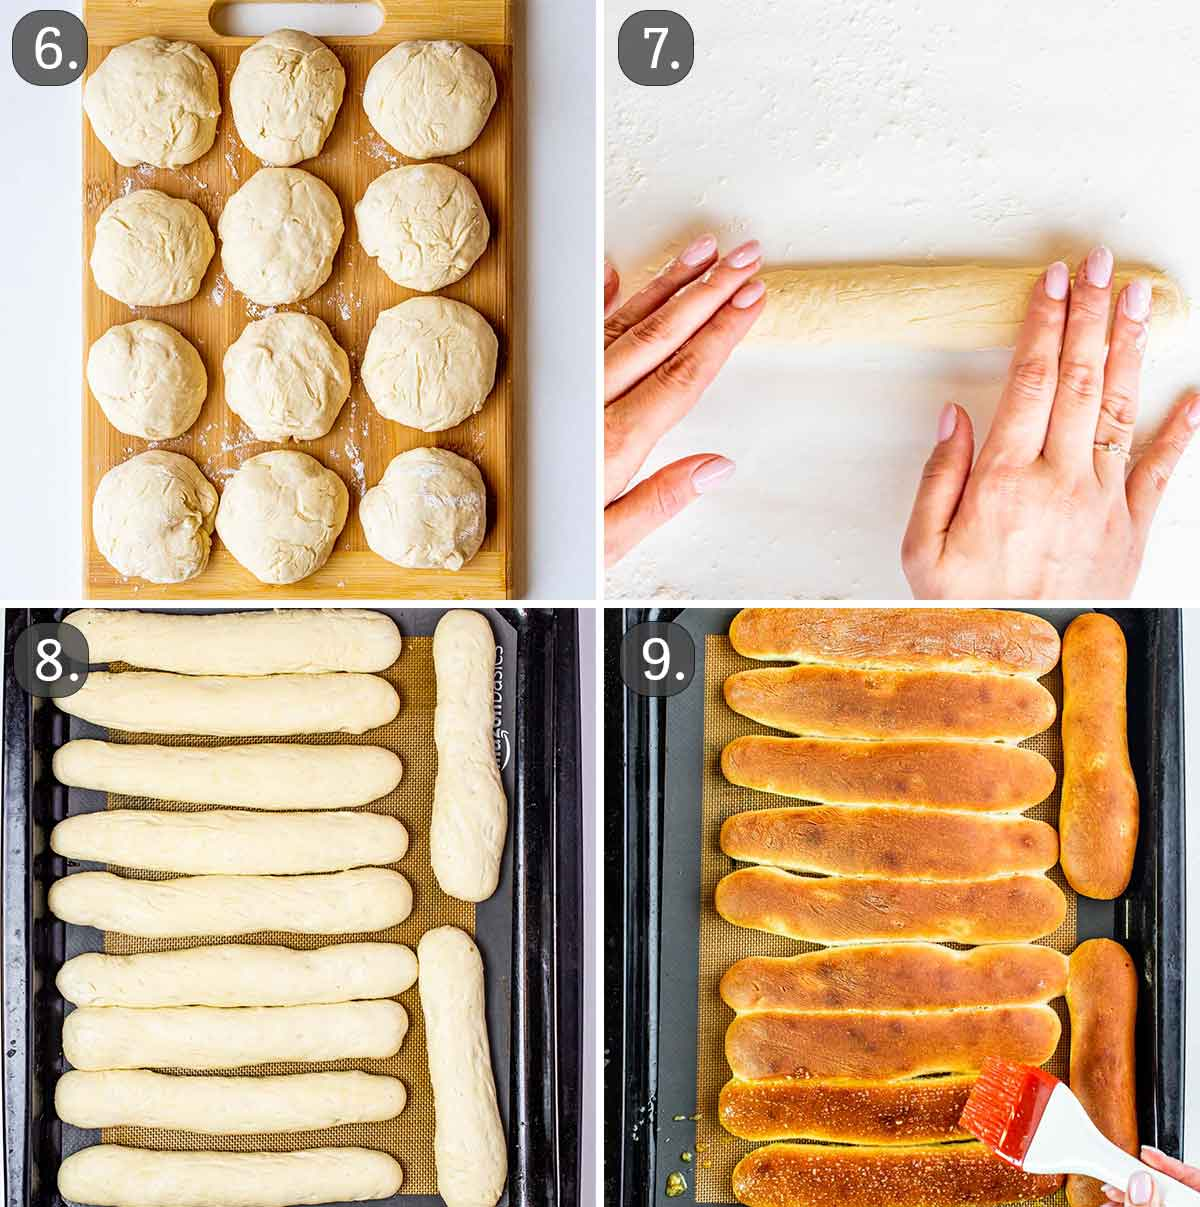 process shots showing how to shape breadsticks and bake them.